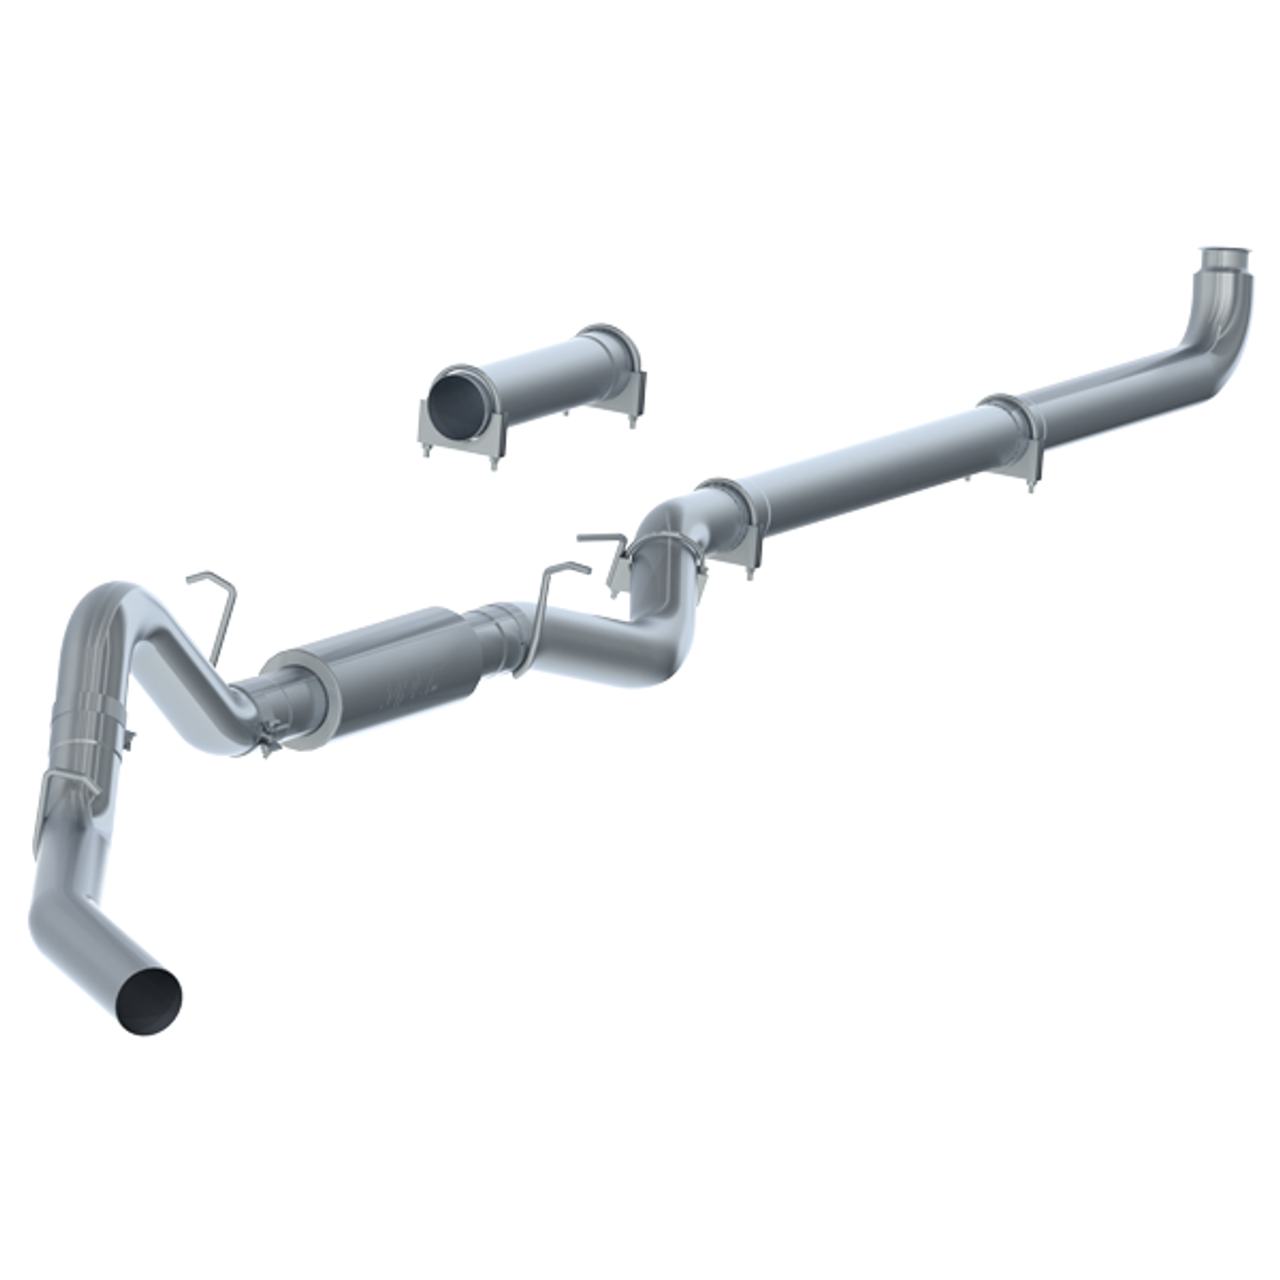 """2007-2010 GMC/Chevy 2500/3500 MBRP (P1 Race Parts) 4"""" Downpipe Back Aluminized Race Exhaust With Muffler C6004P"""